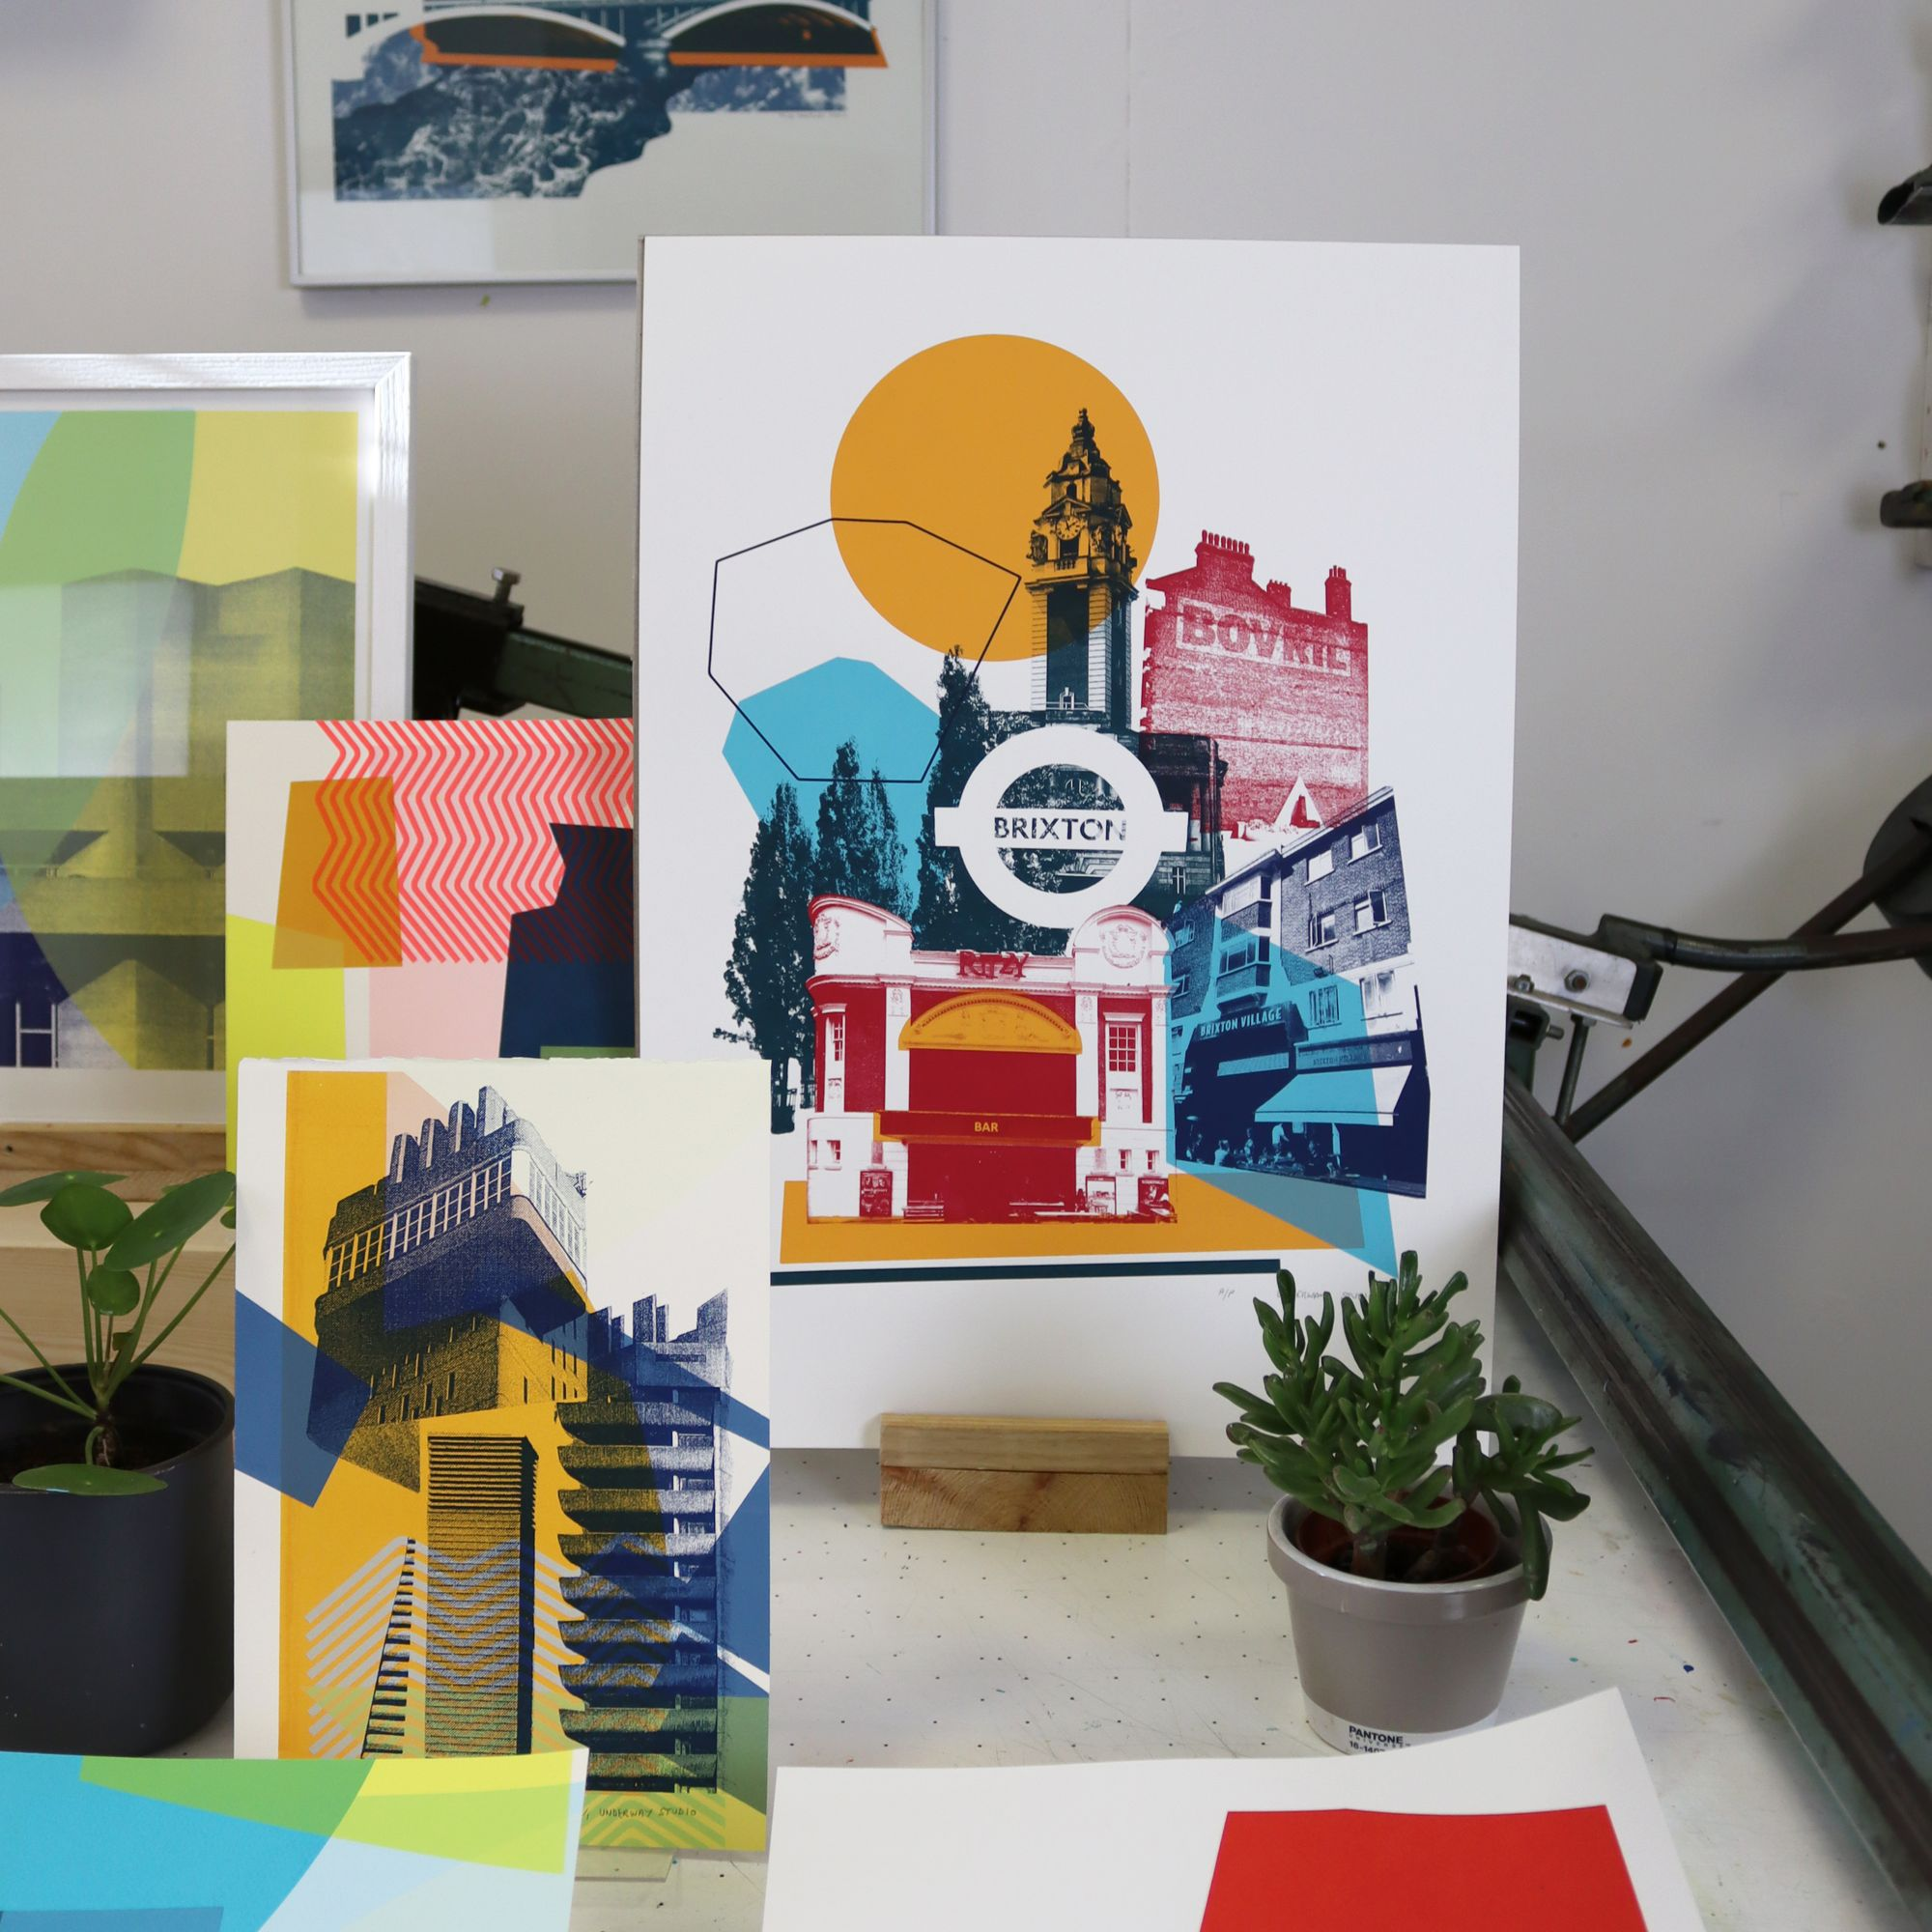 Underway Studio: Illustrating Architecture in Collaborative Silk-Screen Prints